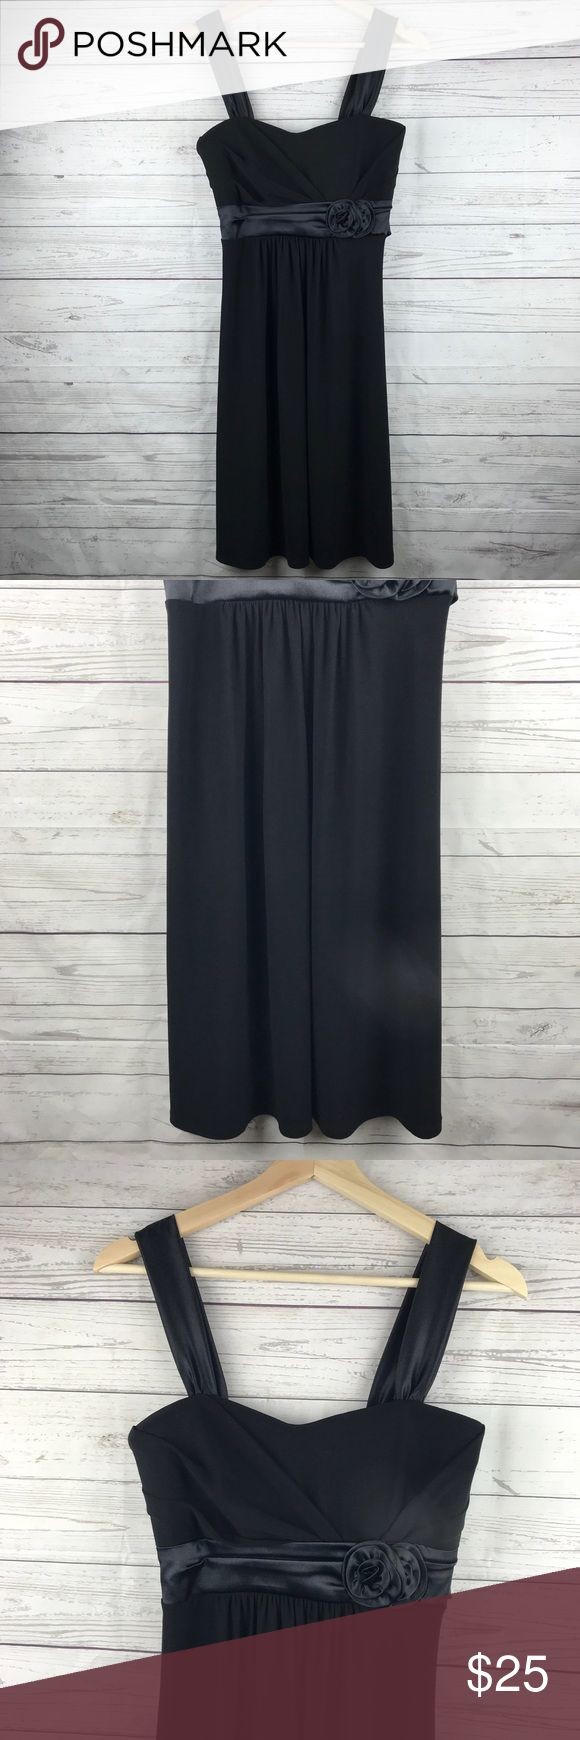 Little Black Dress Wide Spaghetti Straps Tie Waist Little Black Dress  Wide Spaghetti Straps  Brand: Taboo  Tie Back Waist  Size Large  Satin flower Detail Taboo Dresses Mini